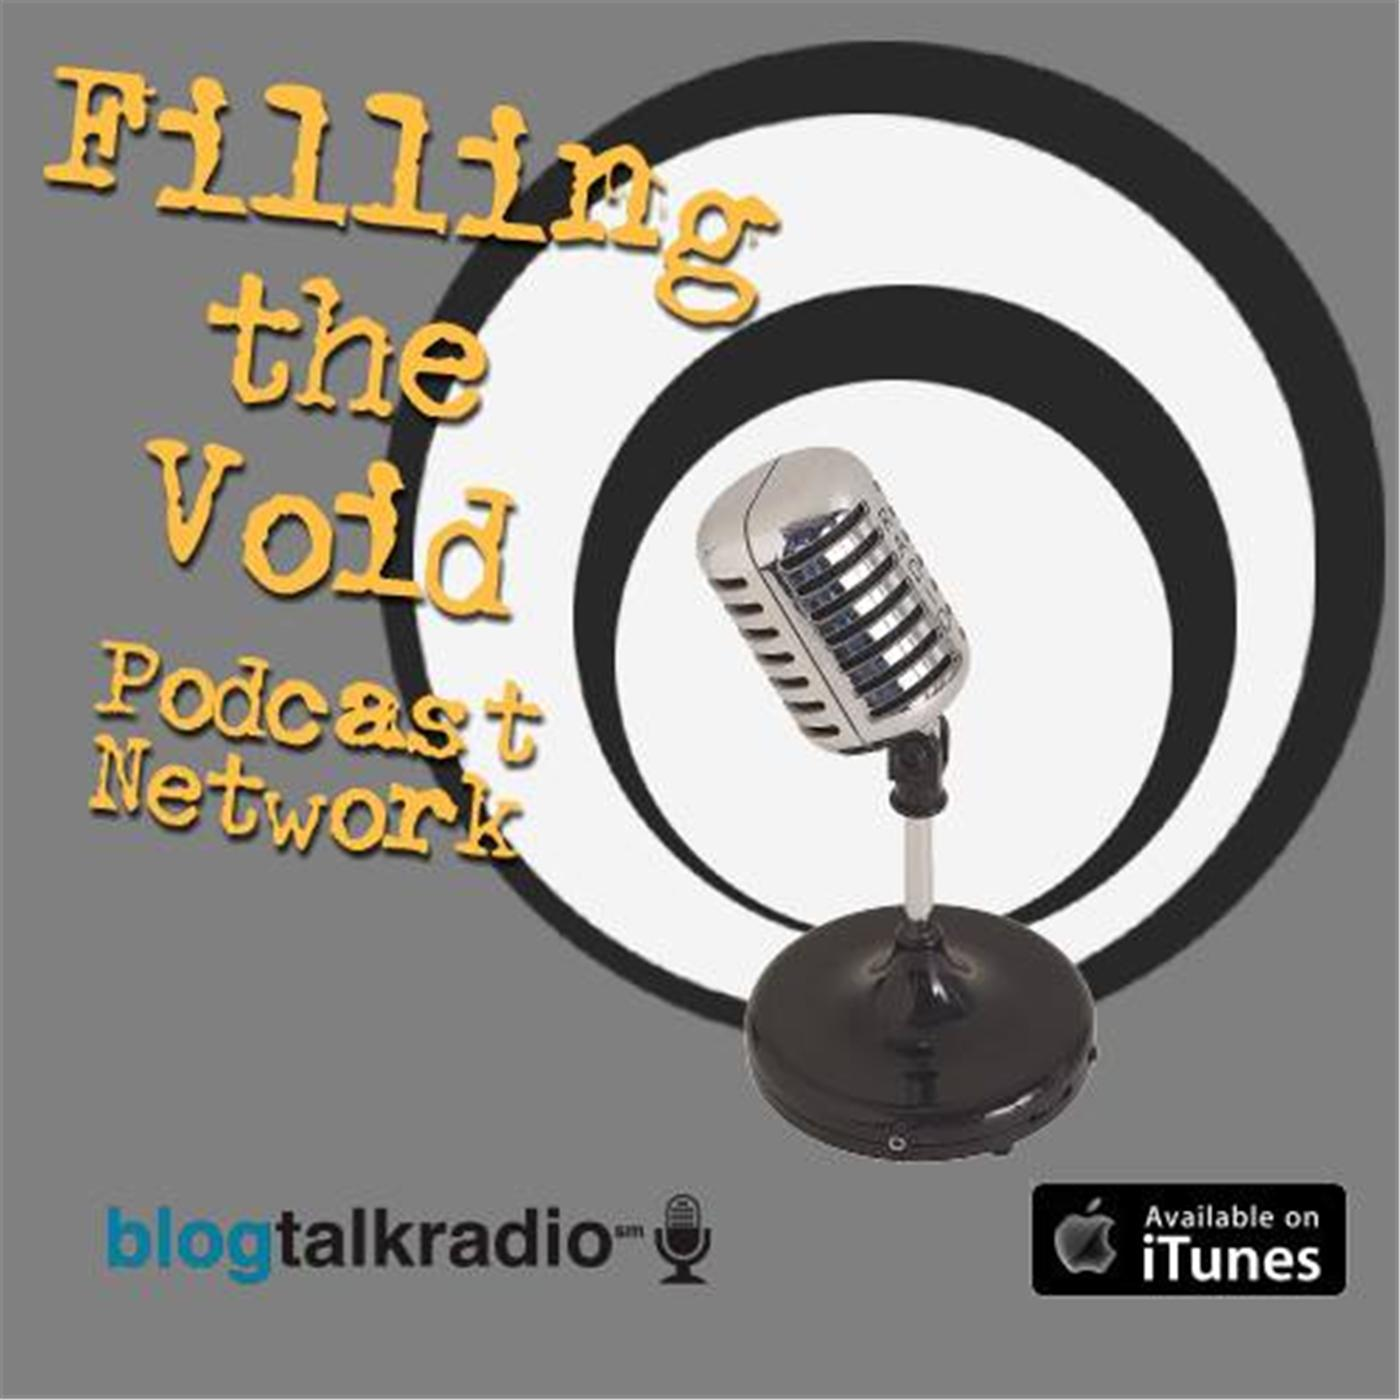 Filling The Void Podcast Network